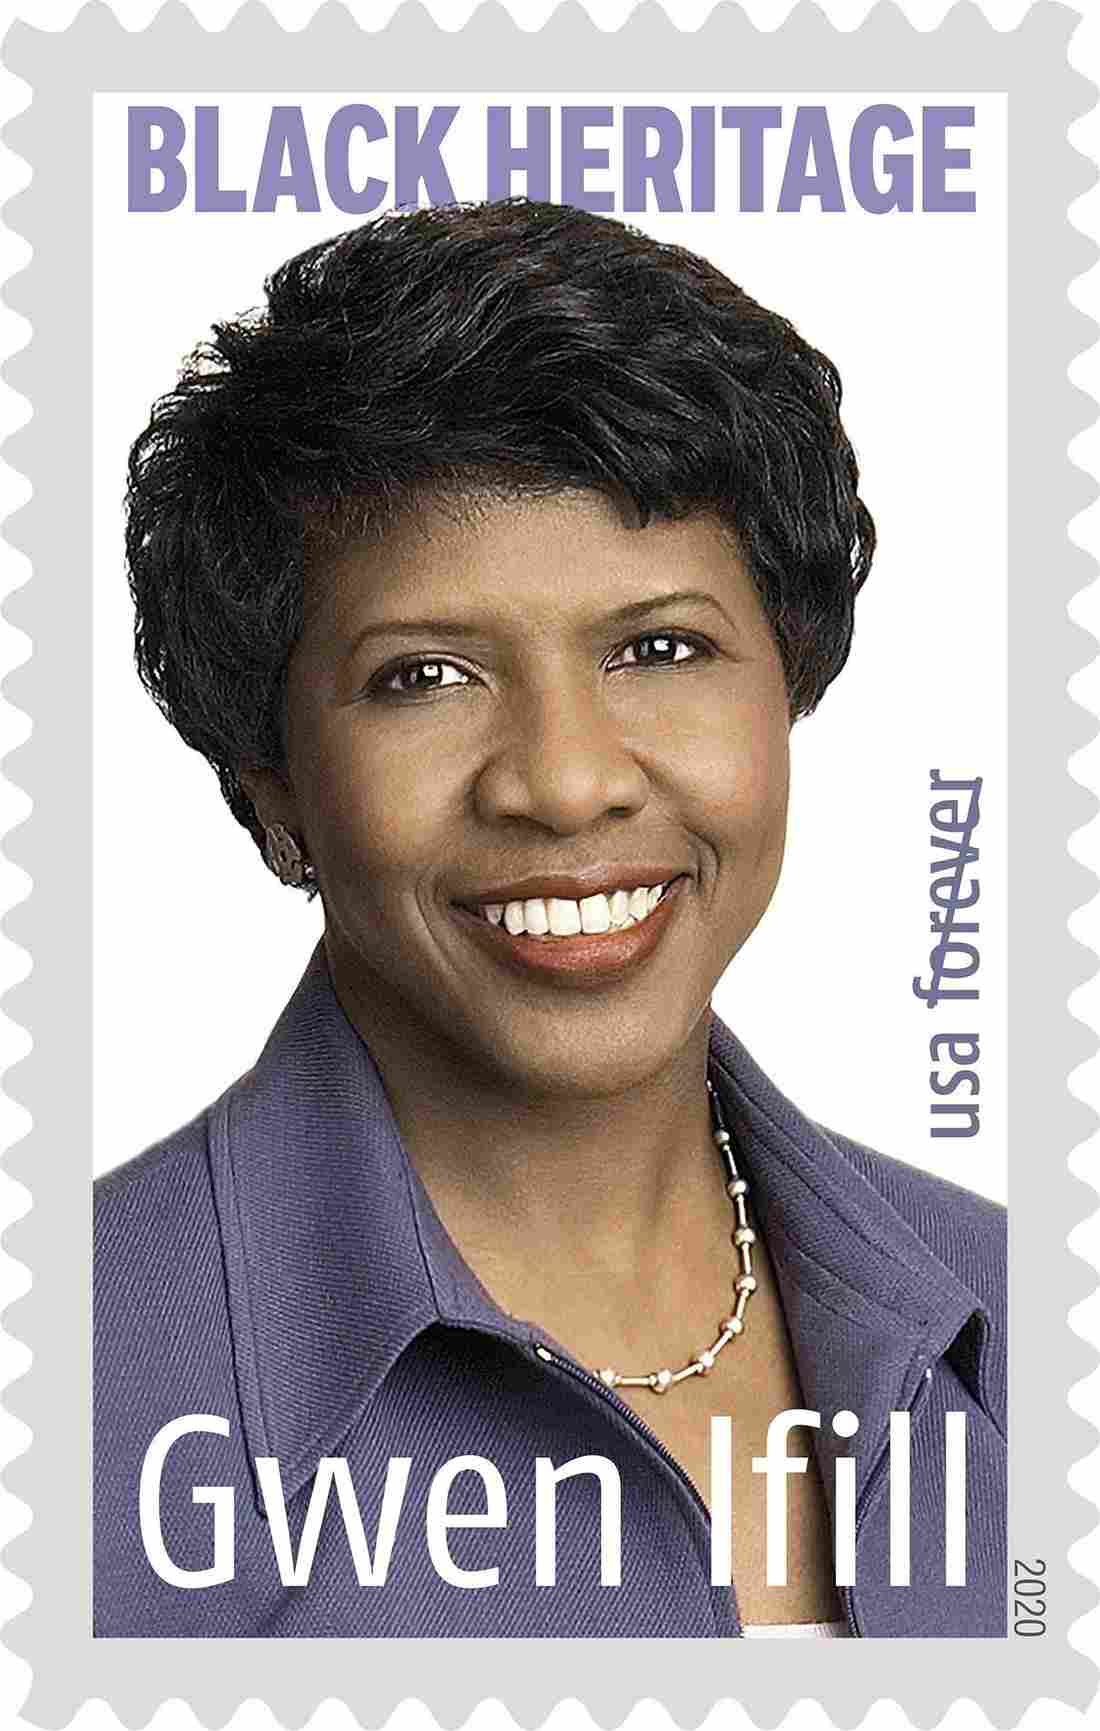 Gwen Ifill's very own stamp created by the US Postal Service | Source: Twitter / USPS